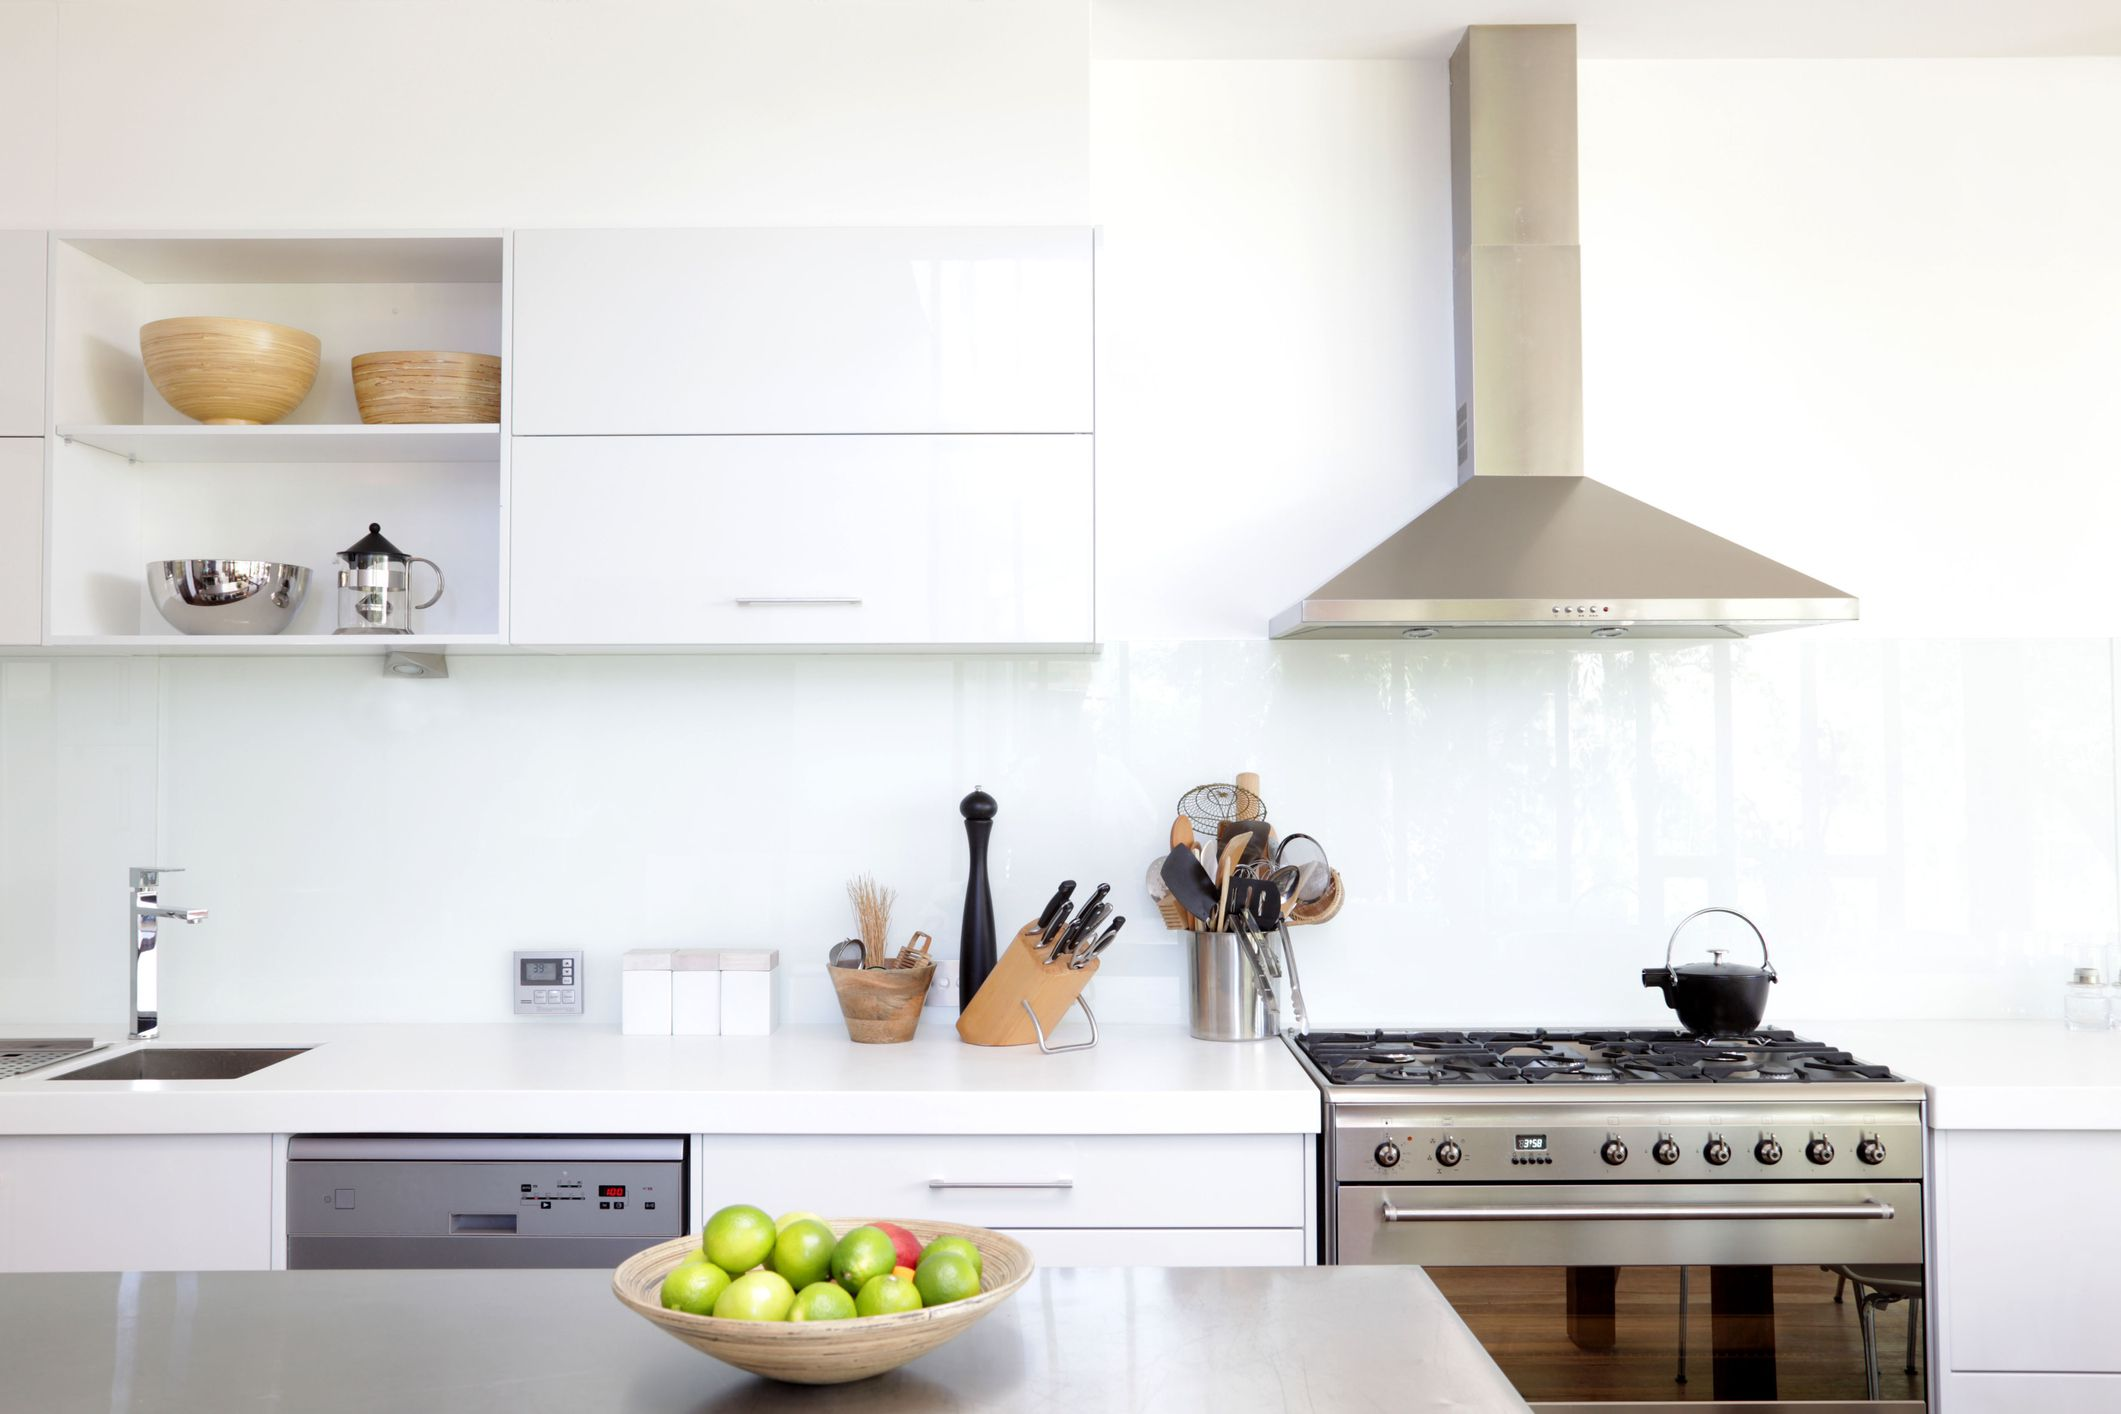 Exploring the Pros and Cons of Wall Ovens vs. a Range